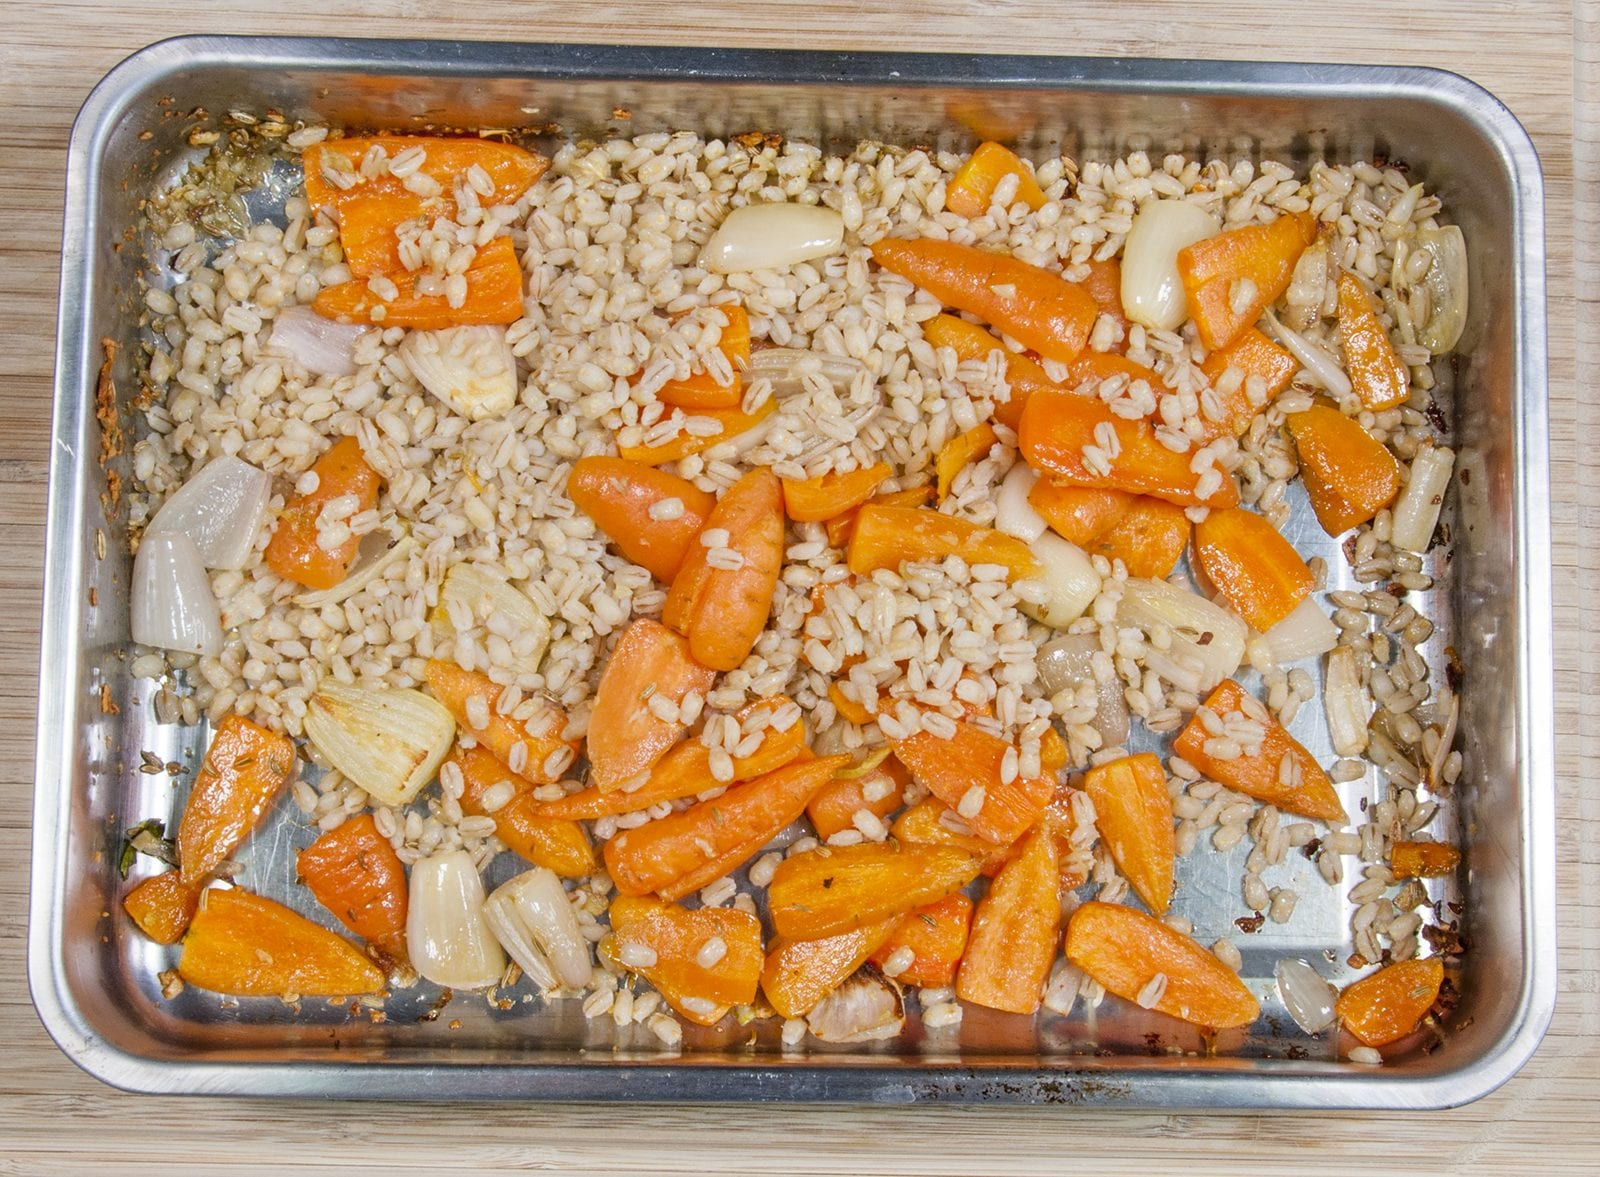 Once cooked add the pearly barley | https://theyumyumclub.com/2019/04/22/braised-carrot-pearl-barley-salad/